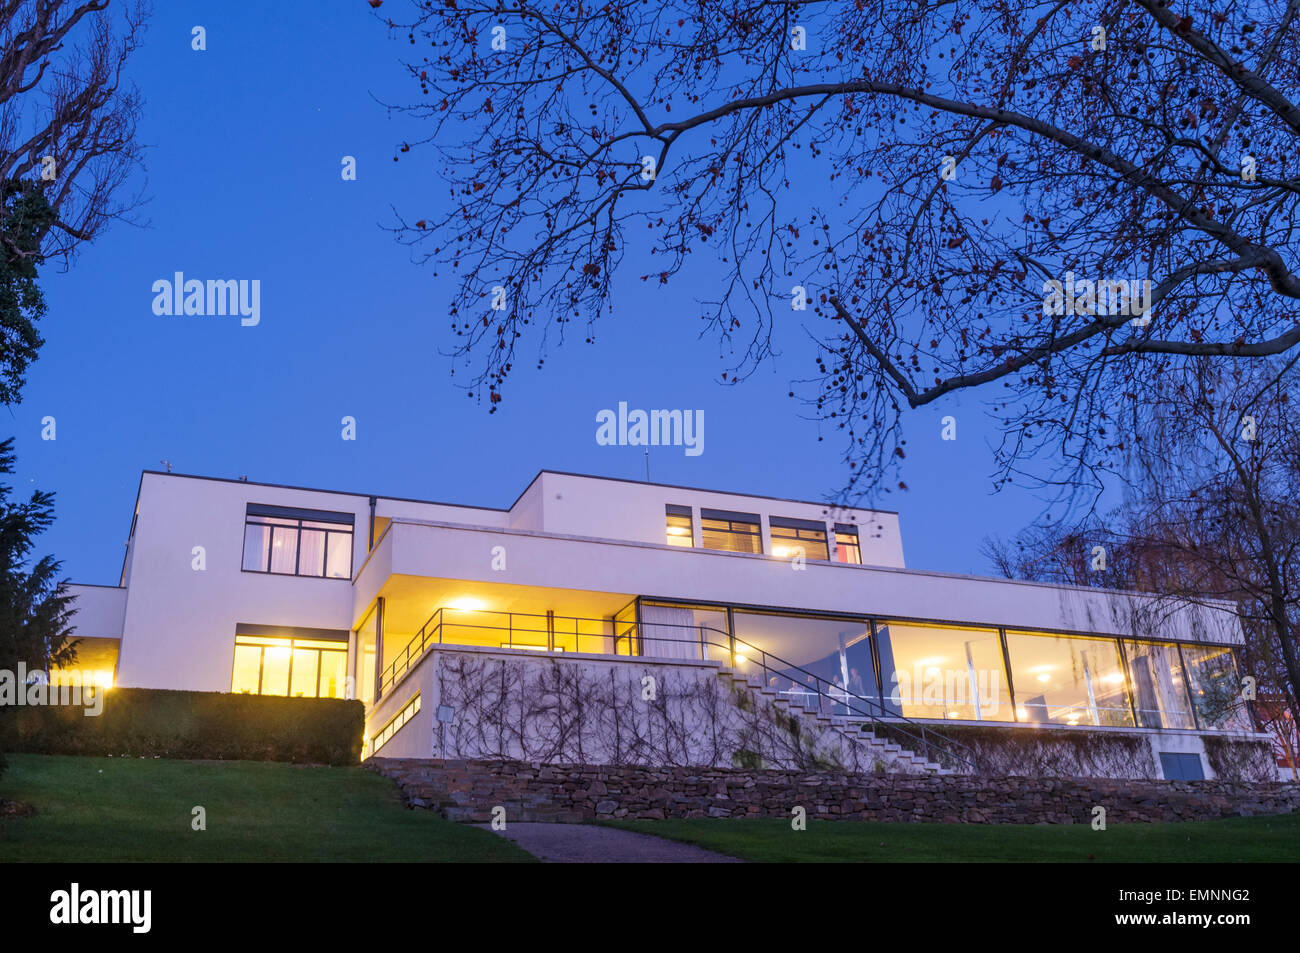 villa tugendhat at dusk mies van der rohe built it between 1928 and stock photo 81612498 alamy. Black Bedroom Furniture Sets. Home Design Ideas